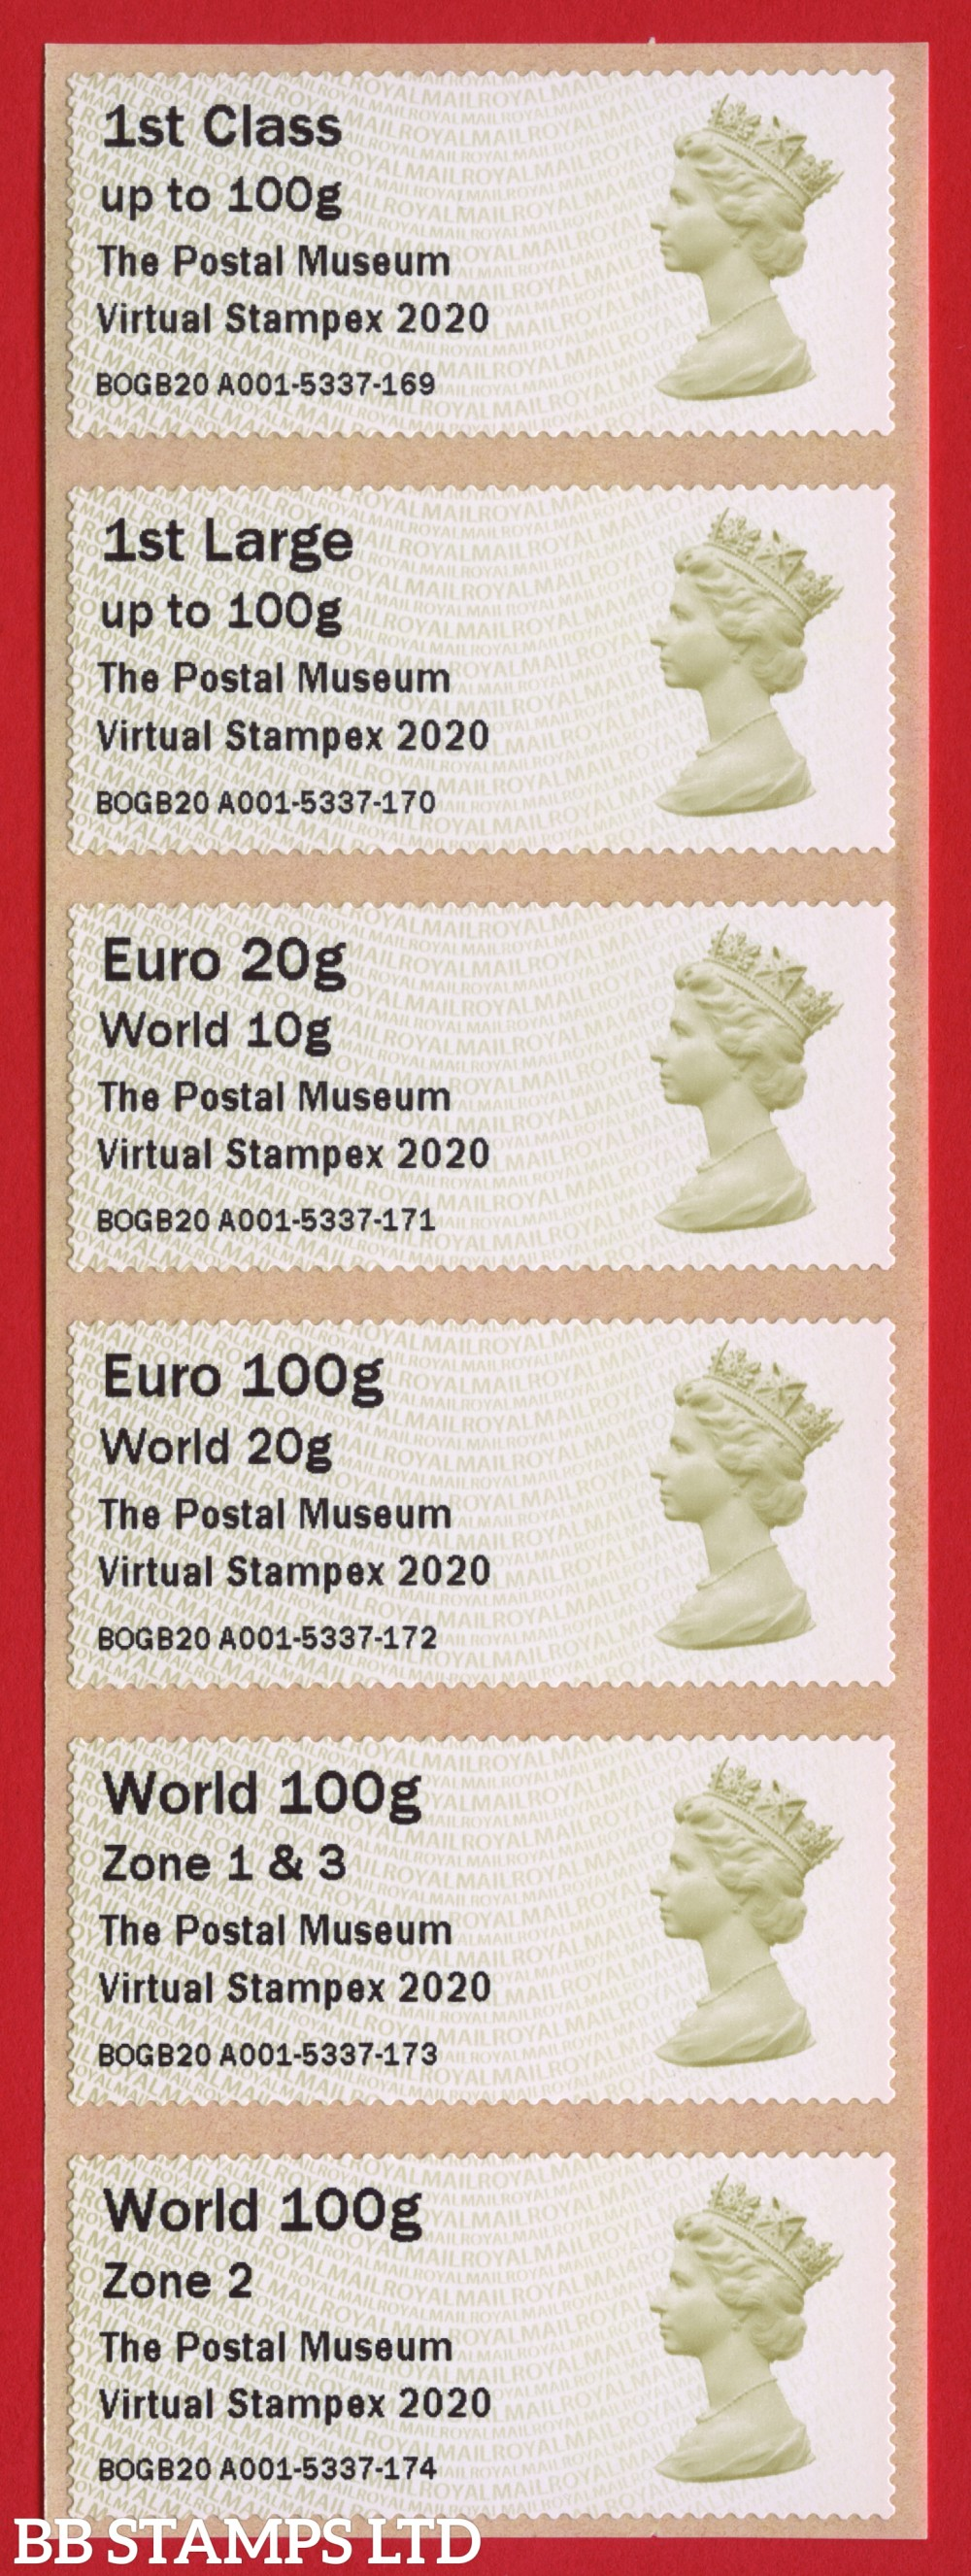 Machin The Postal Museum Virtual Stampex 2020 1st - World Zone 2 (set of 6) Type IIIA: MA14. Only available for three days, between 1st and 3rd October 2020. (BK30, P3)